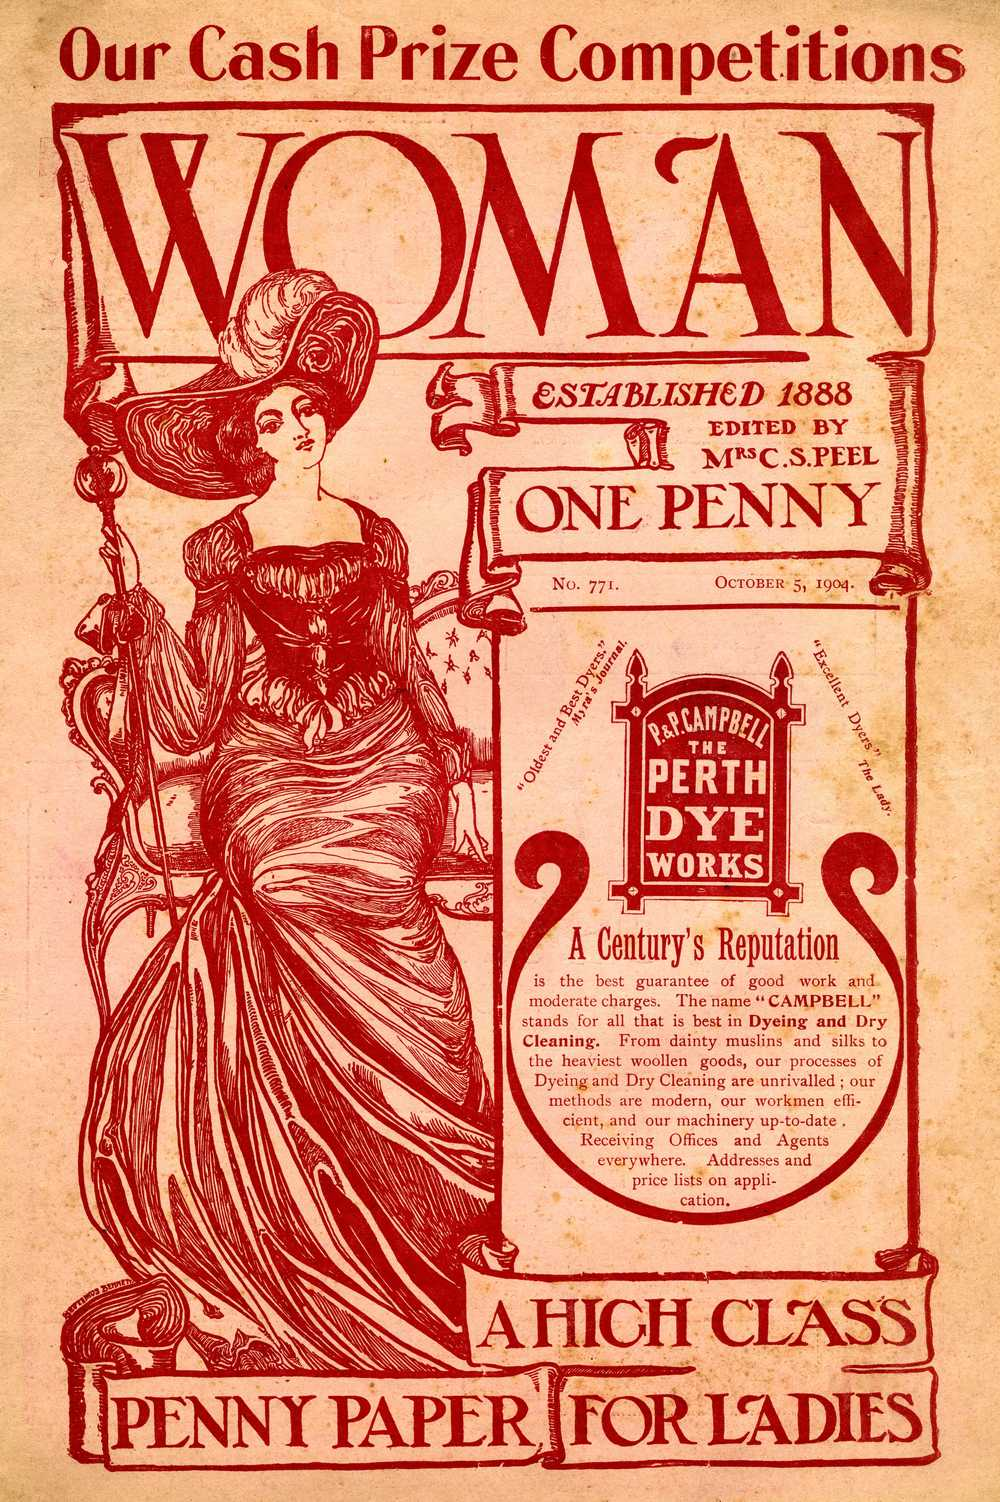 Woman magazine from 1904 with a cover design by Septimus Bennett, younger brother of Arnold Bennett, the Potteries novelist and the magazine's former editor.